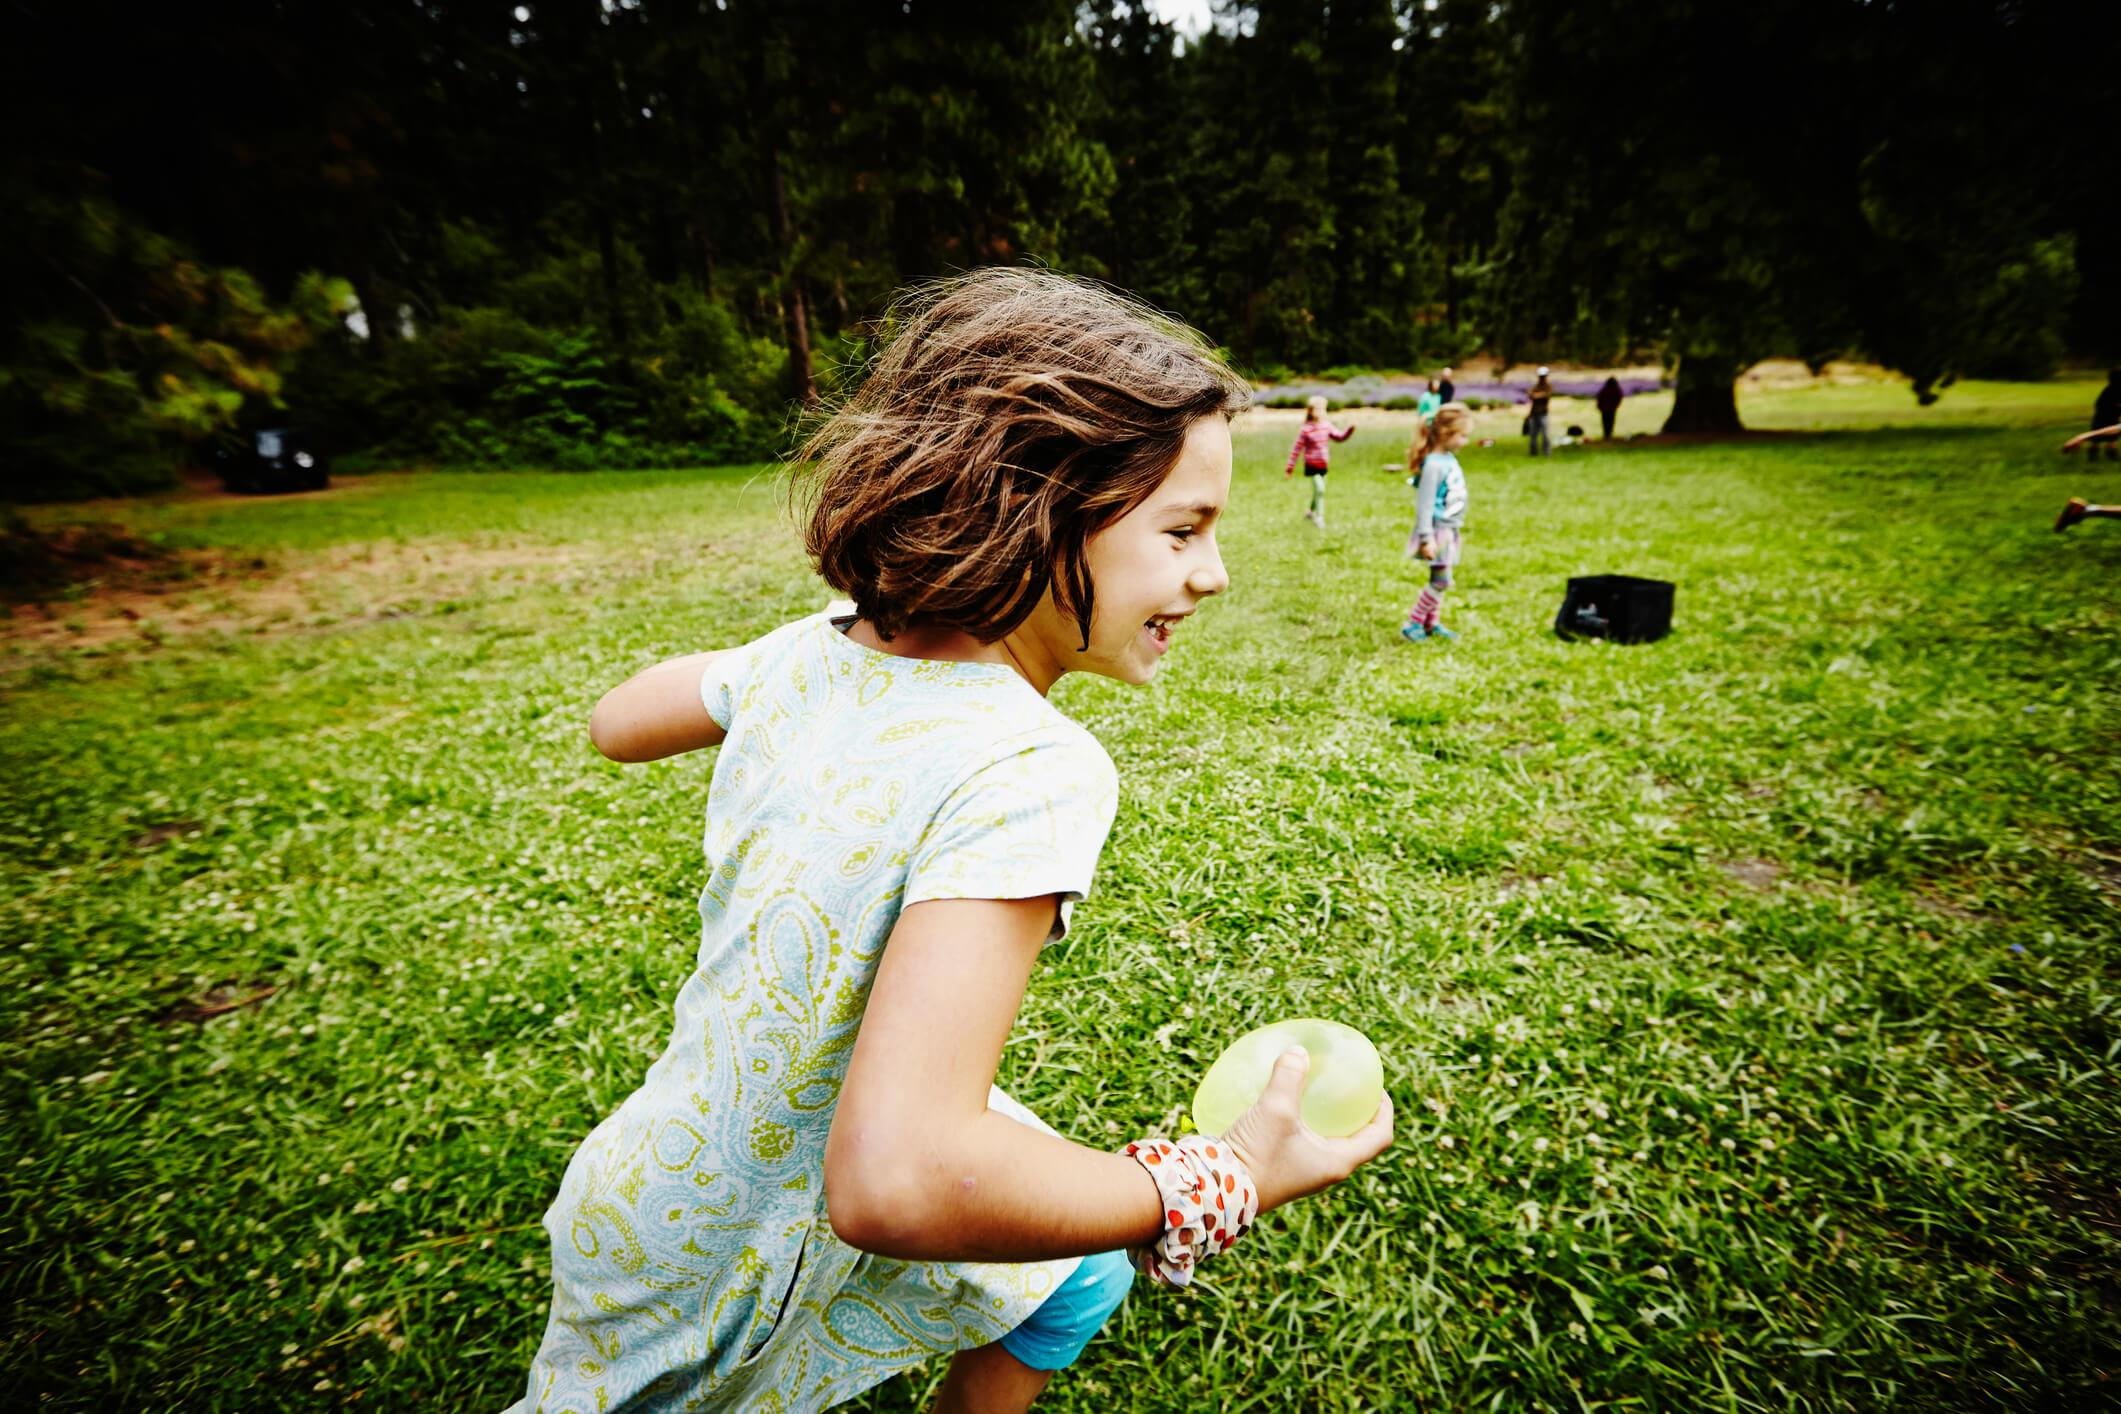 Little girl running and playing on grass